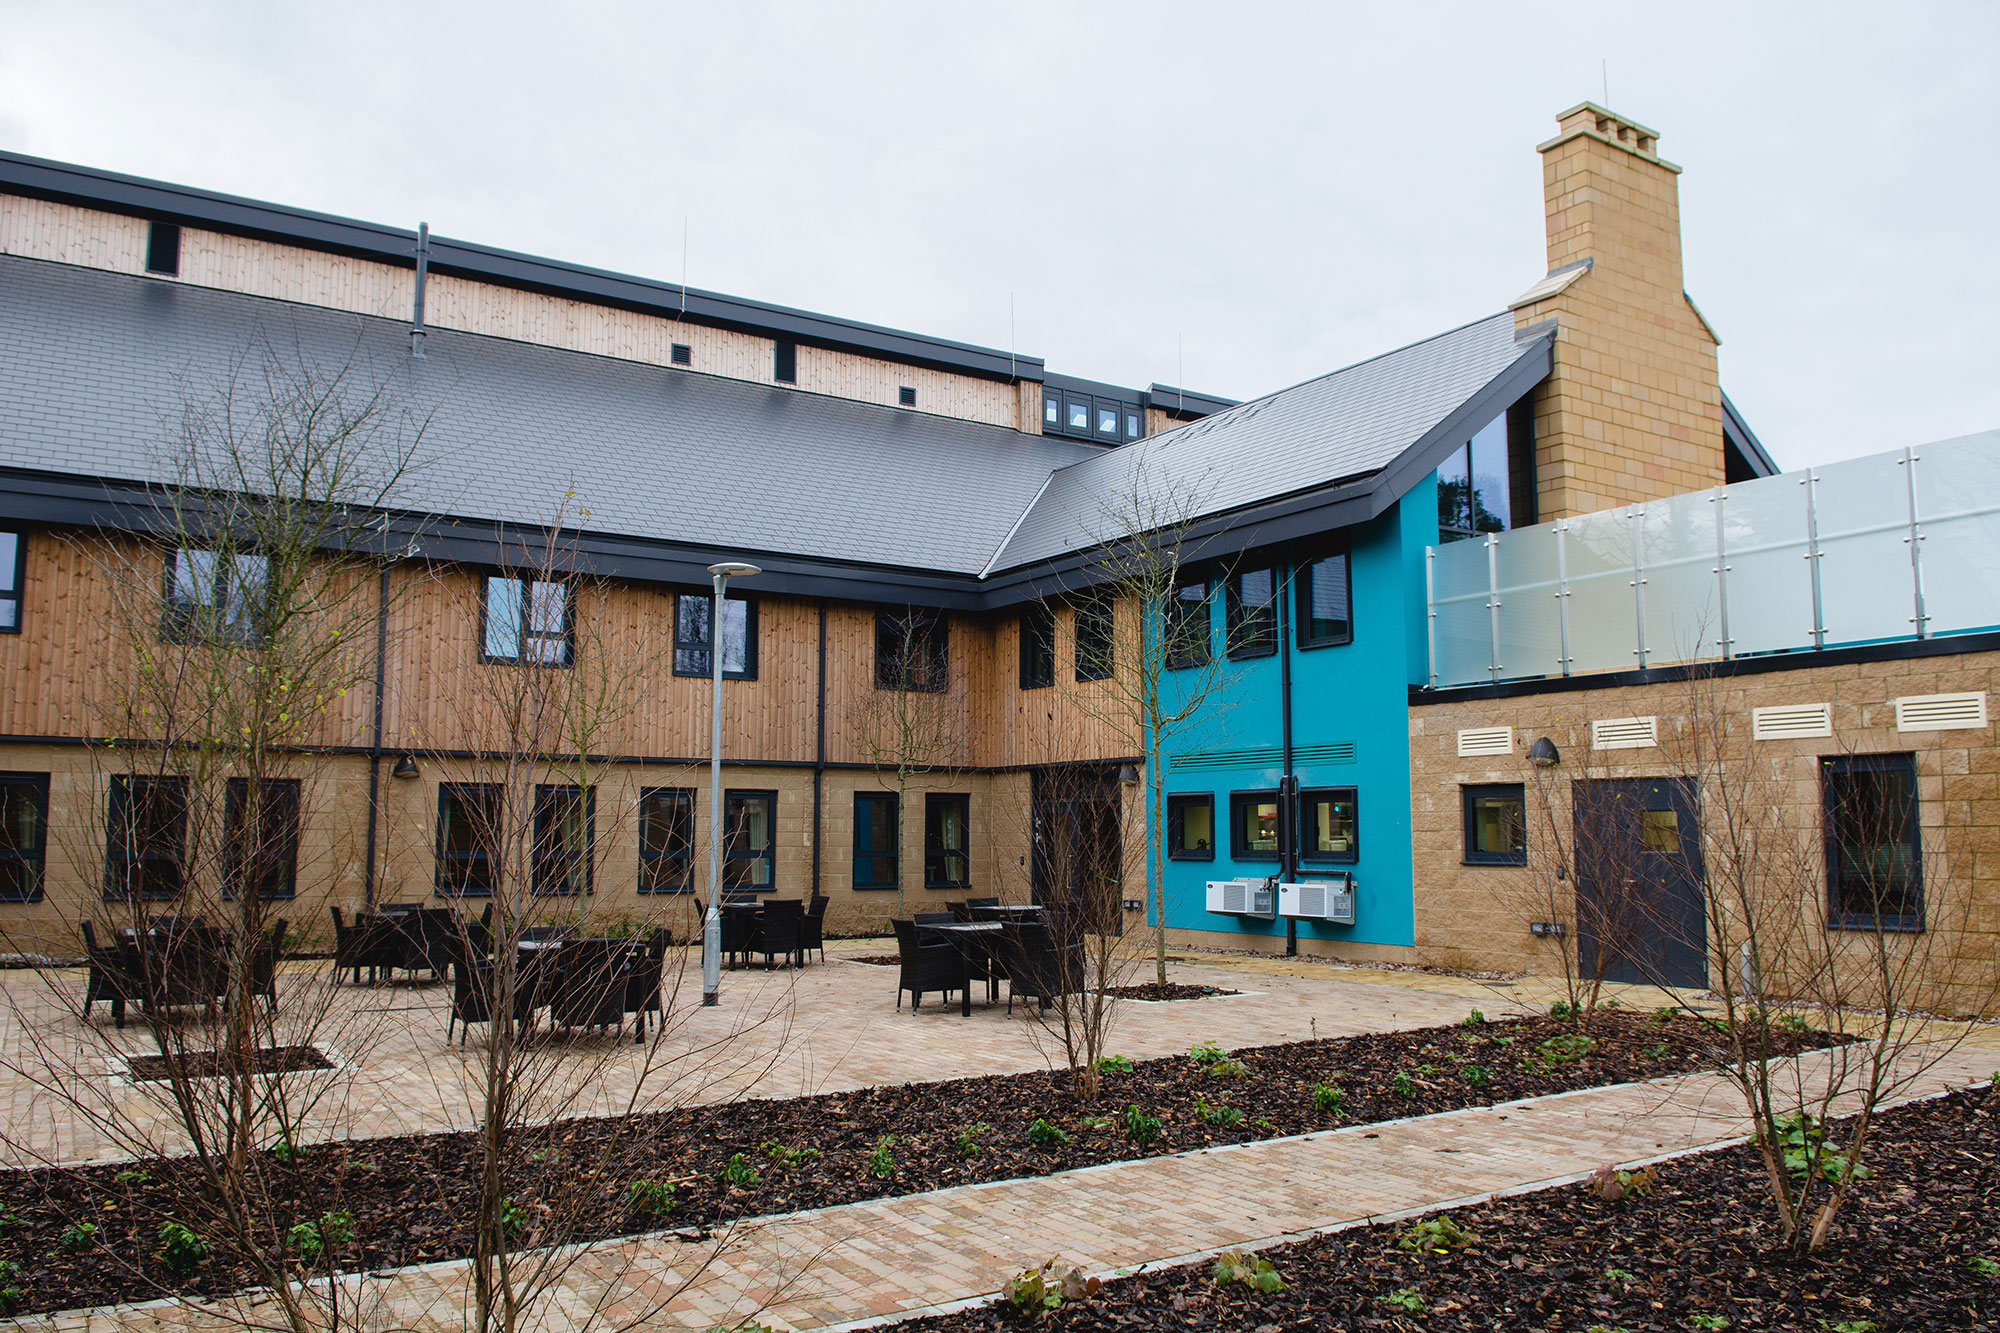 New 60 Bed Care Home For Solihull